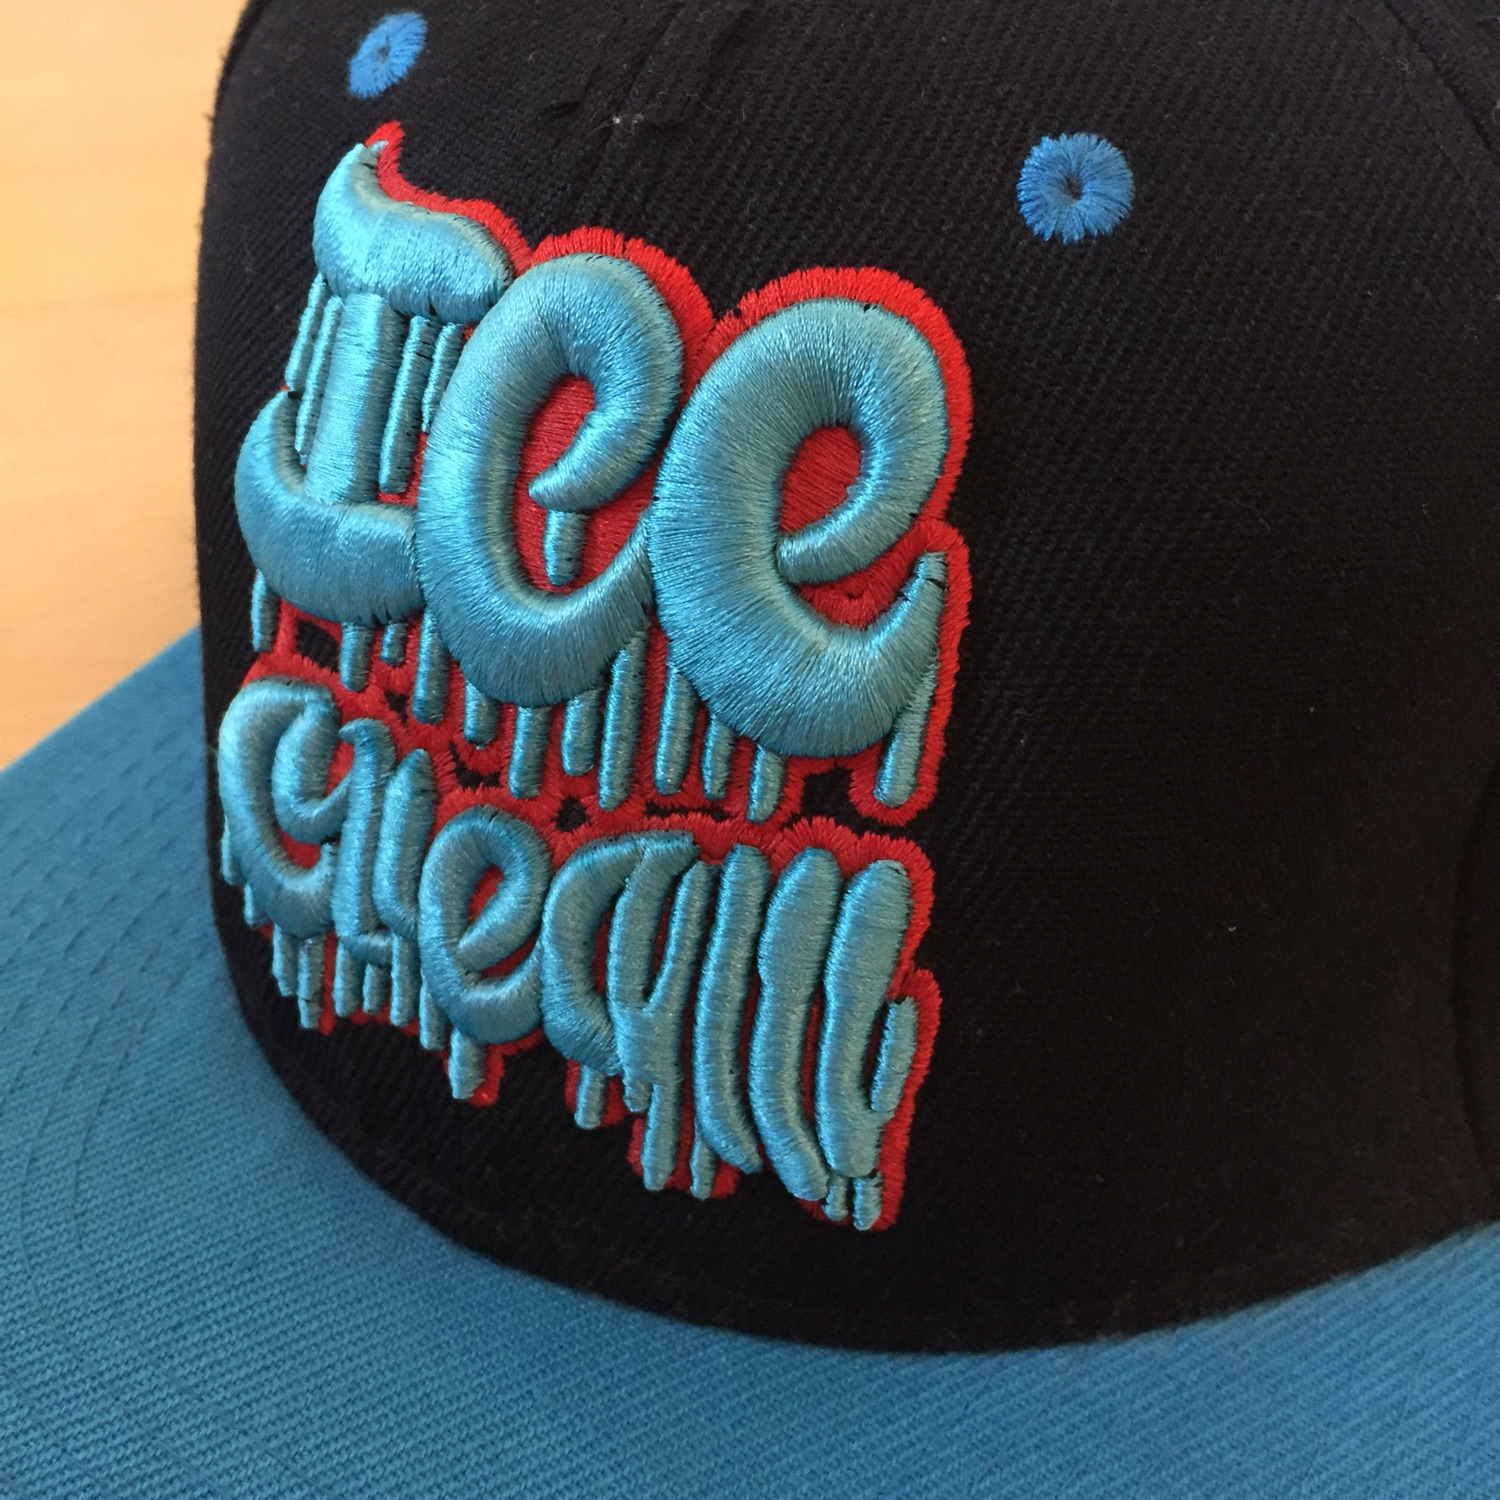 Icecream Dripping Logo Flatbrim: